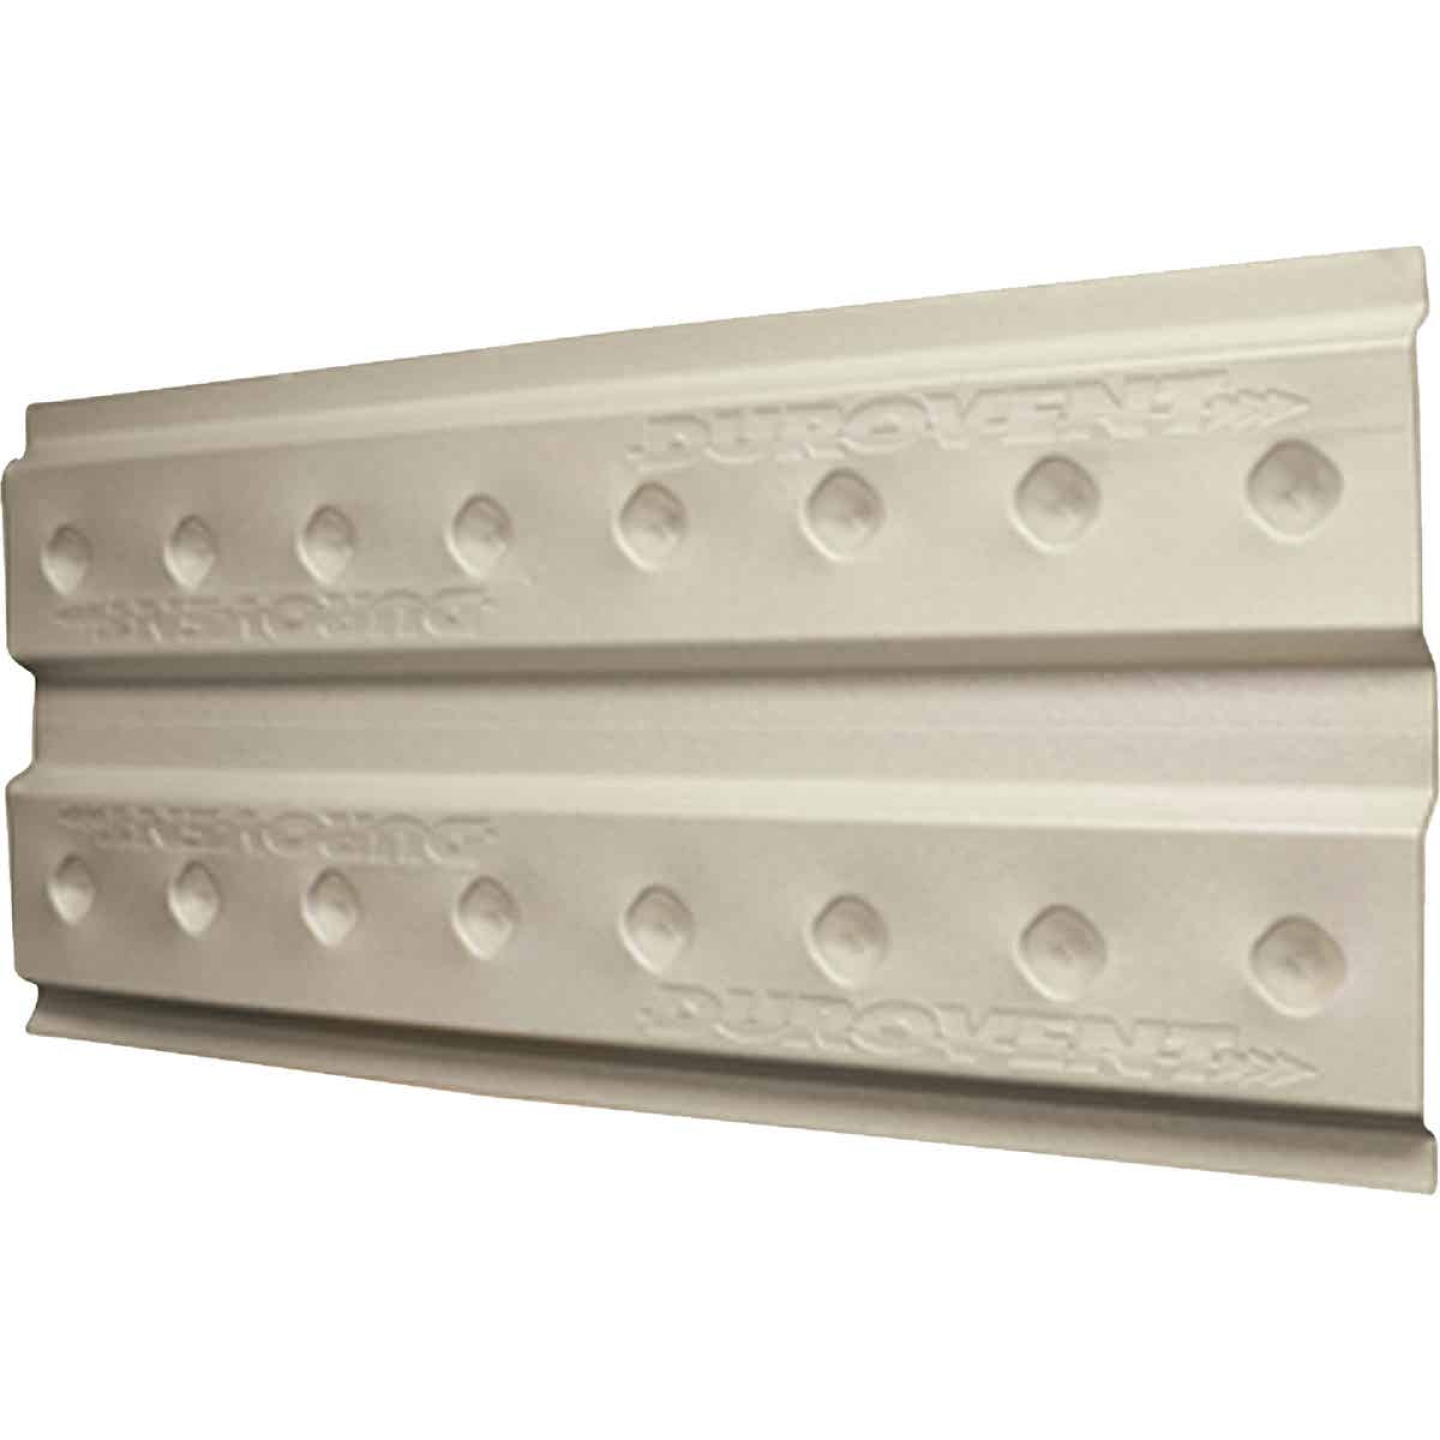 "ADO Durovent Baffle 22"" x 48"" Polystyrene DuroVent Attic Rafter Vent Image 1"